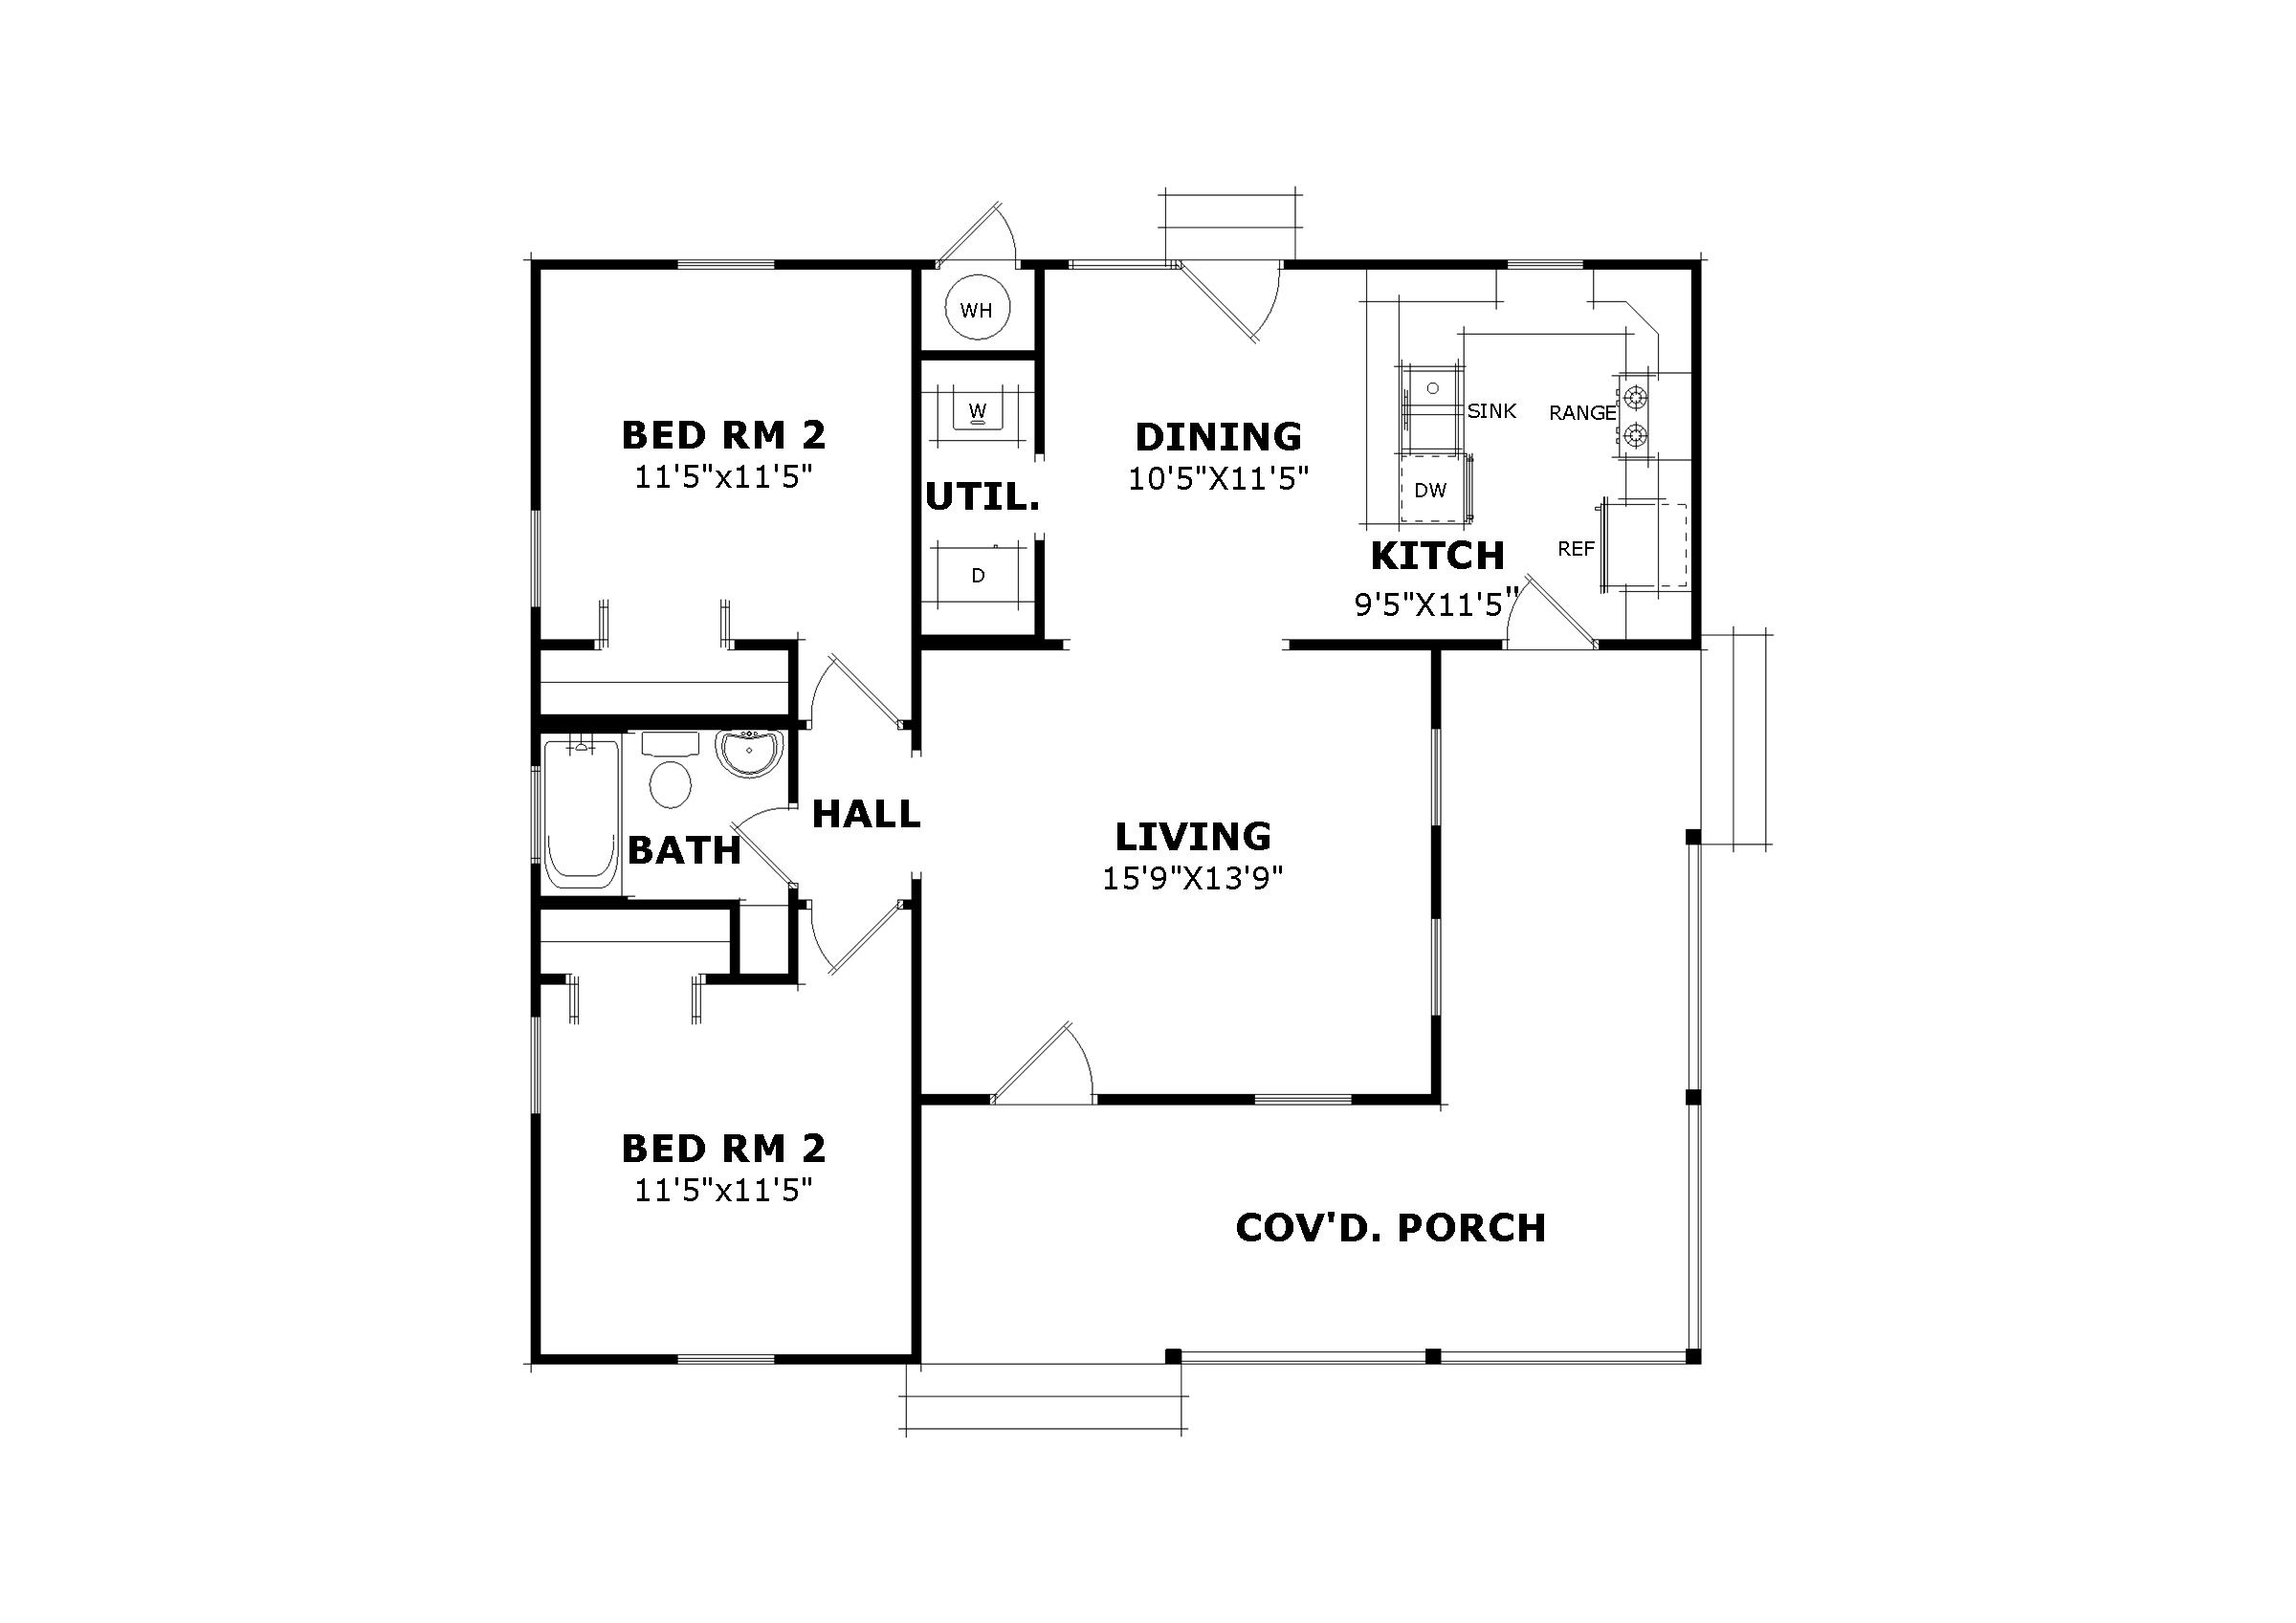 Willow bend 5218 2 bedrooms and 1 5 baths the house designers Floor plan design website